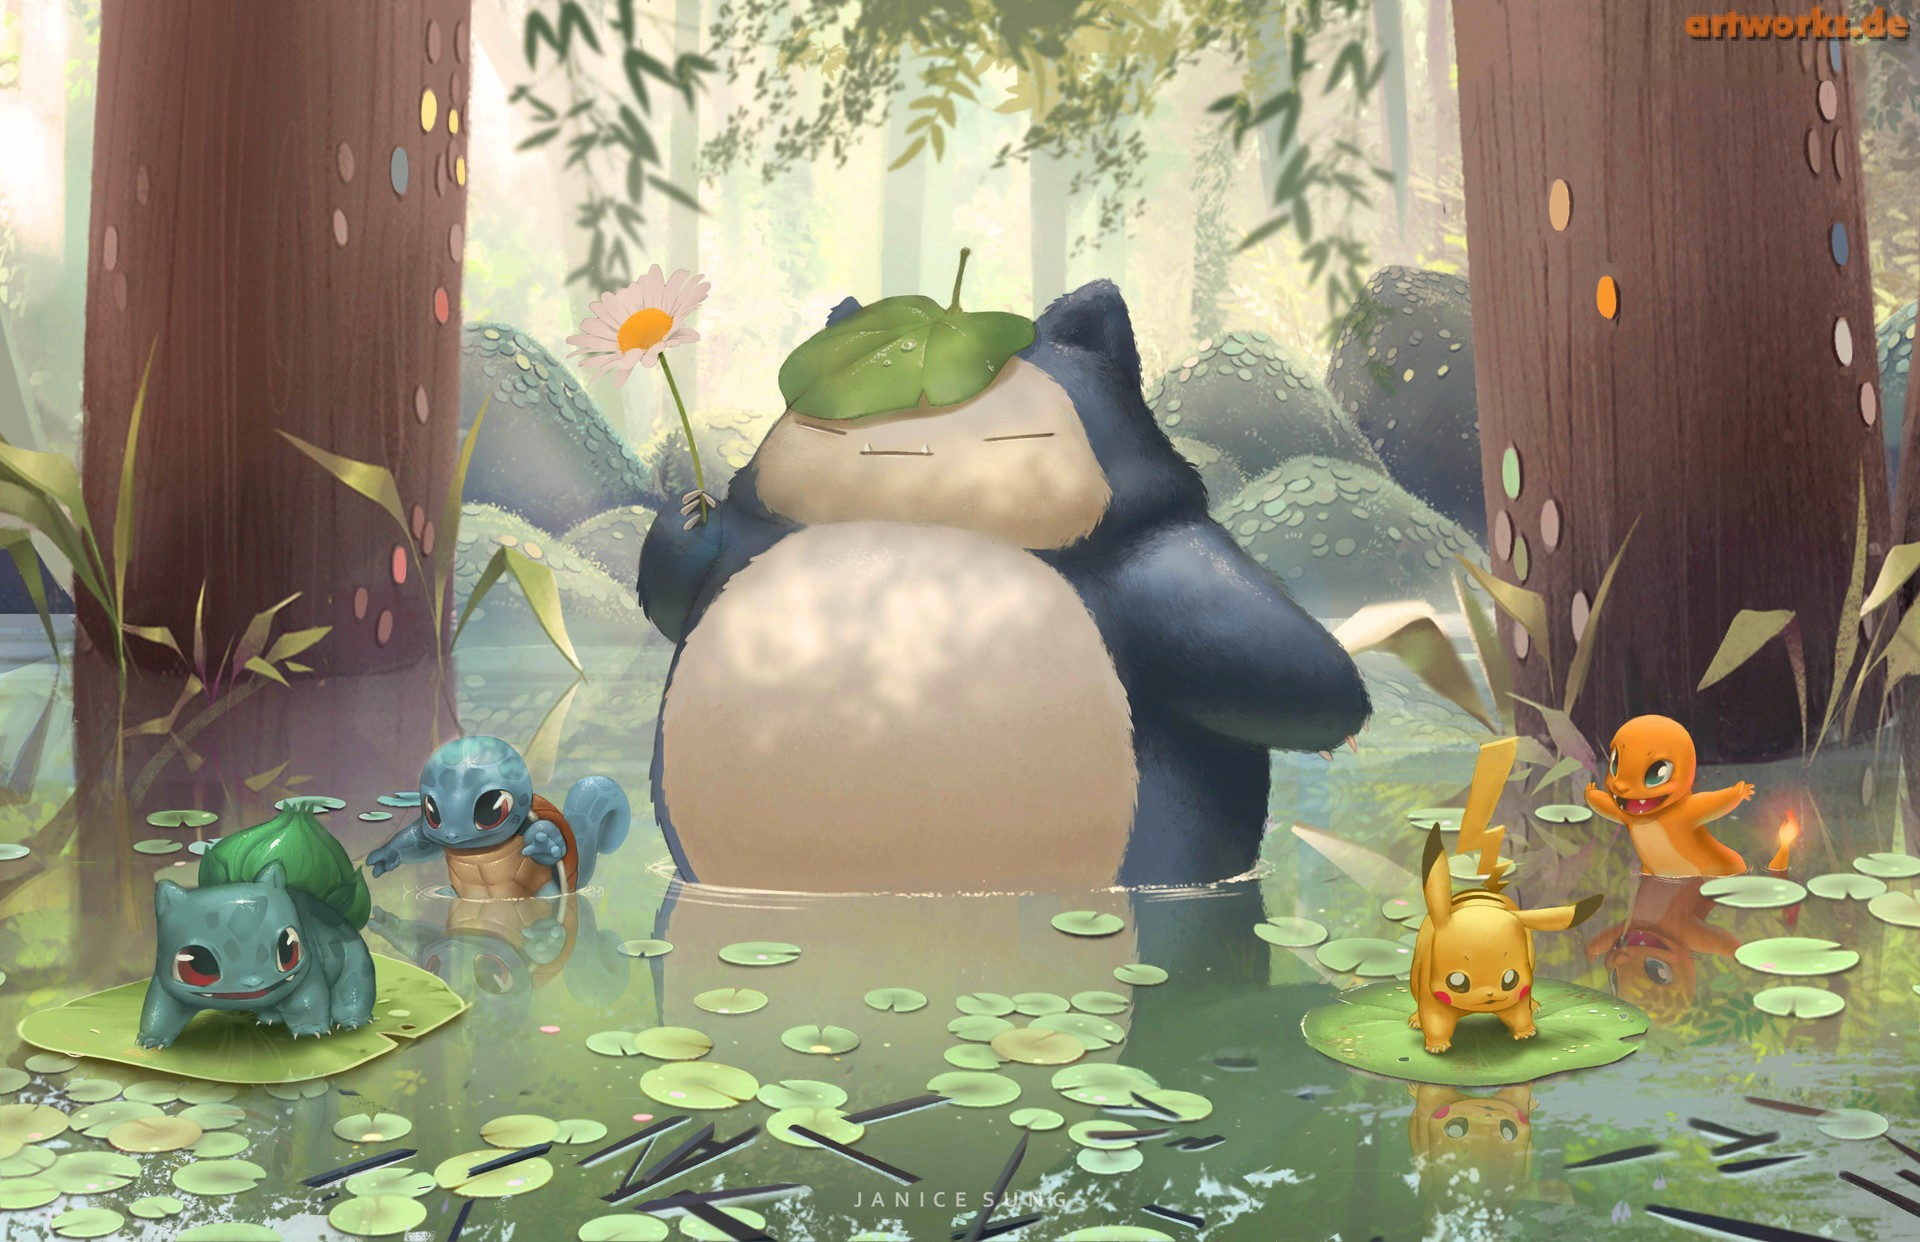 1031-my-neighbor-snorlax-janice-sung